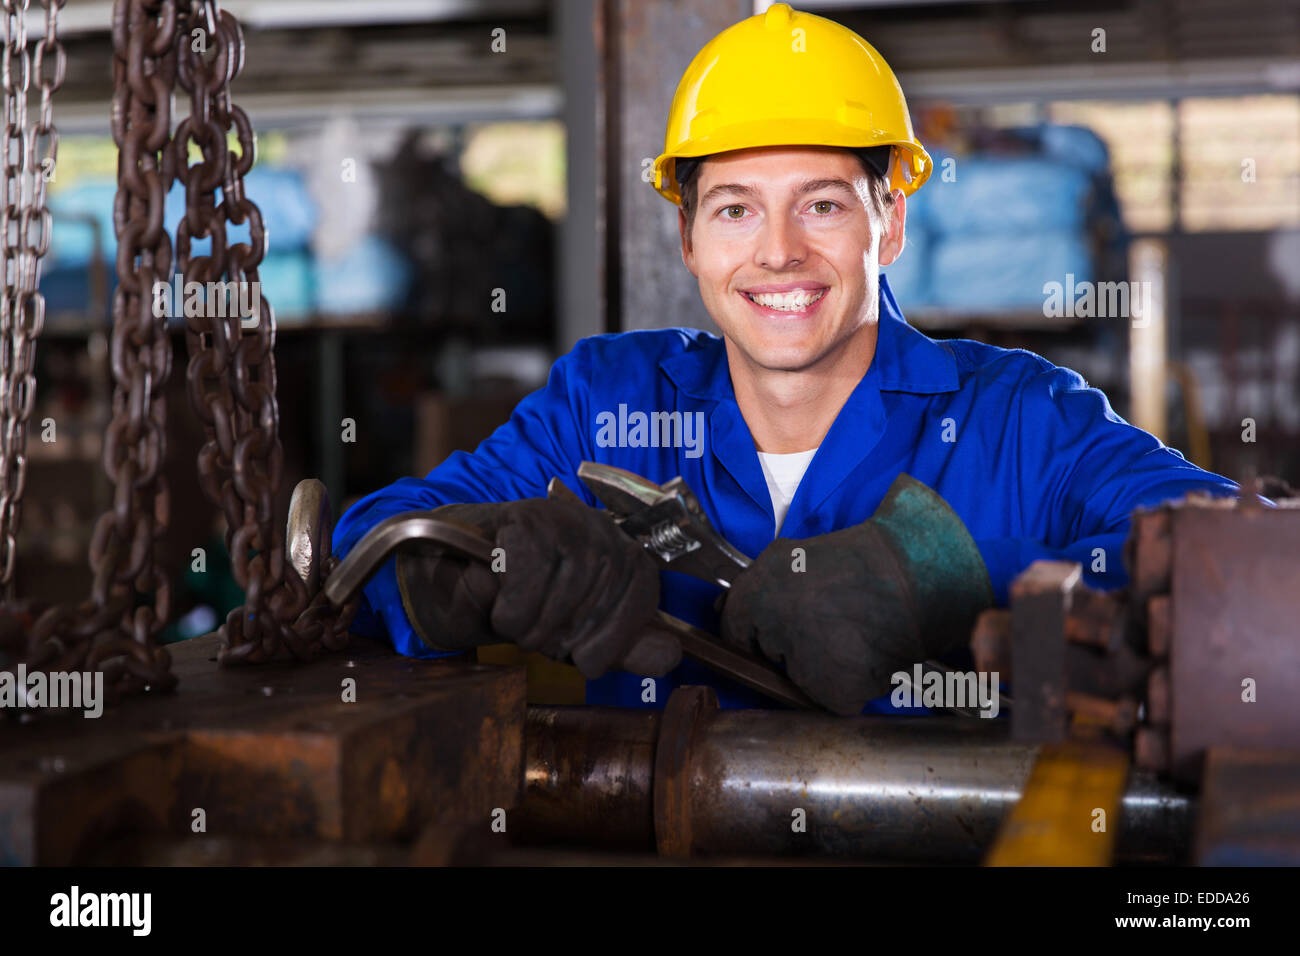 portrait of industrial manual worker in workshop - Stock Image